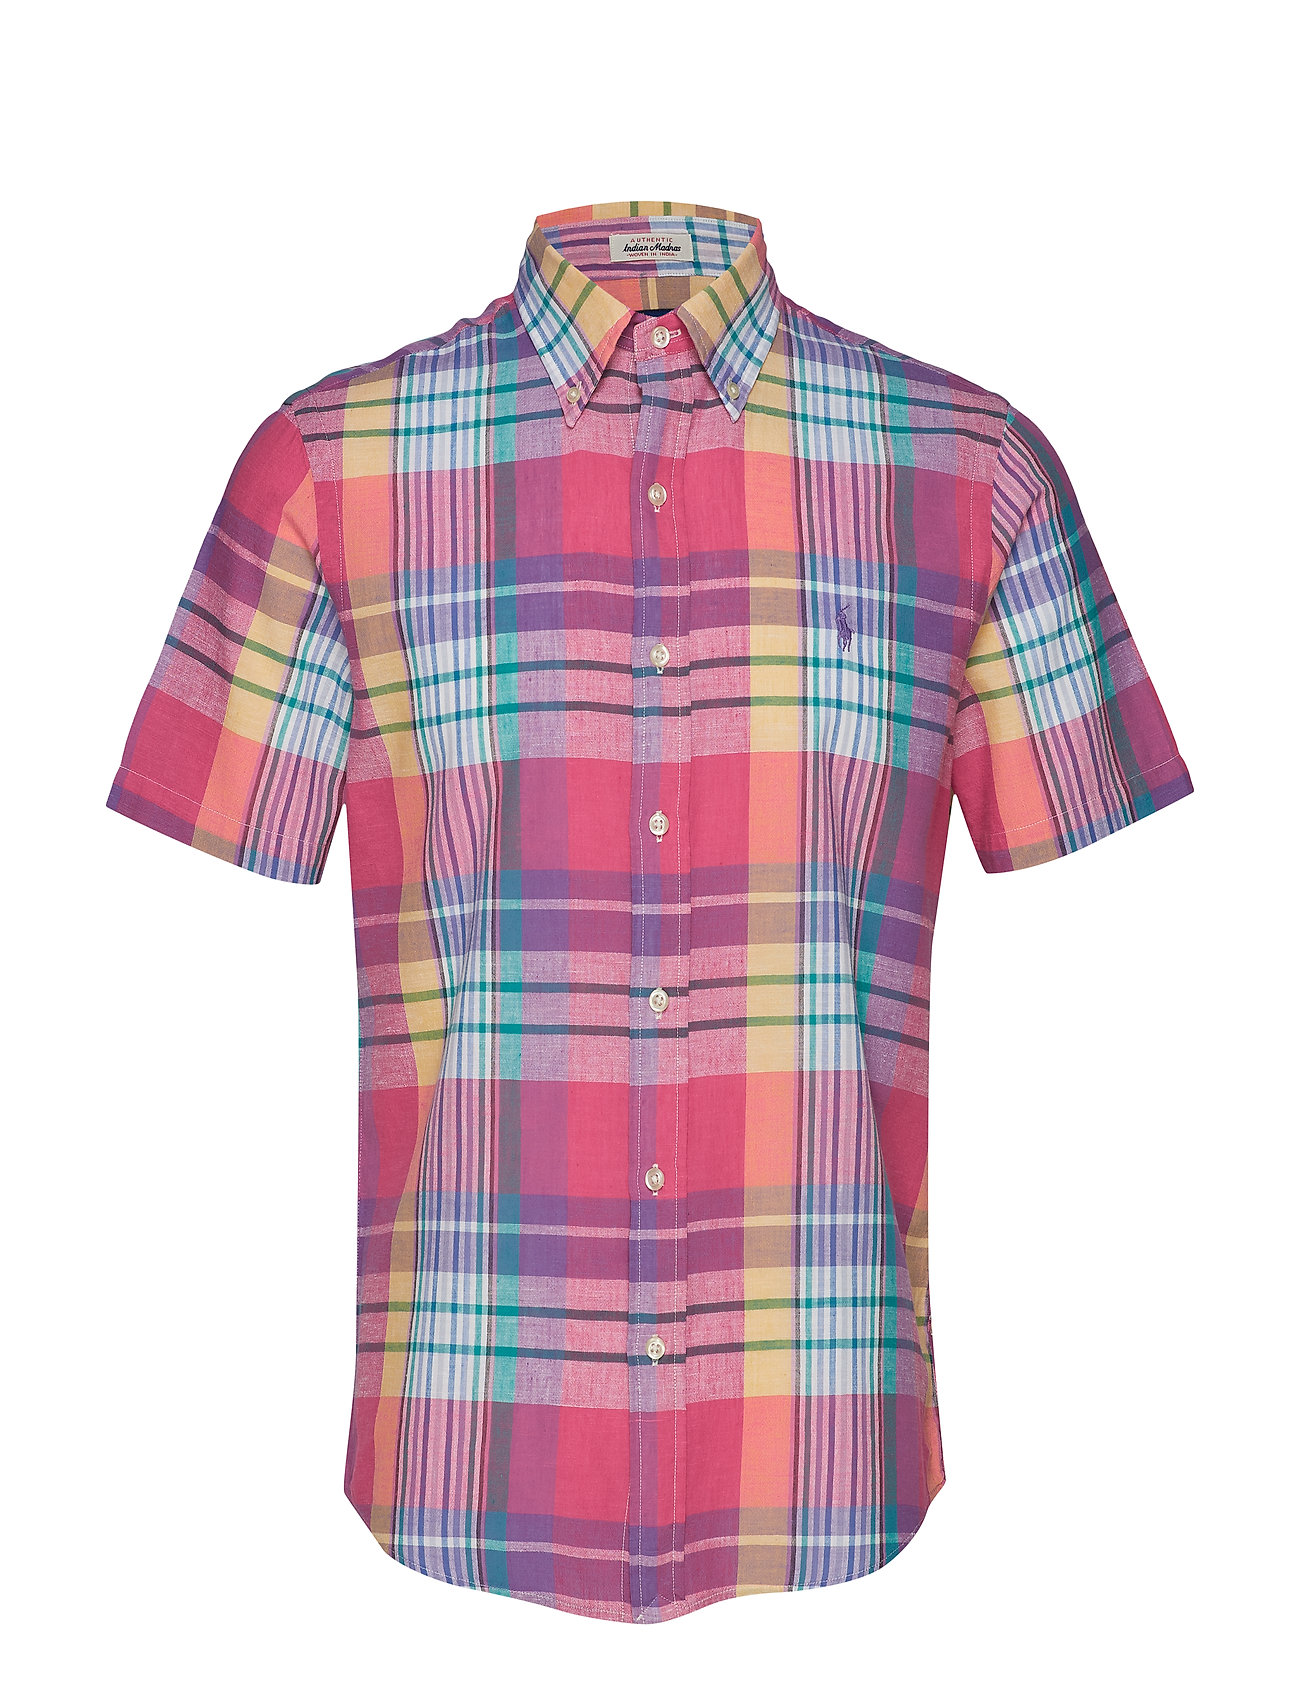 Polo Ralph Lauren Custom Fit Madras Shirt - 4013 RED MULTI